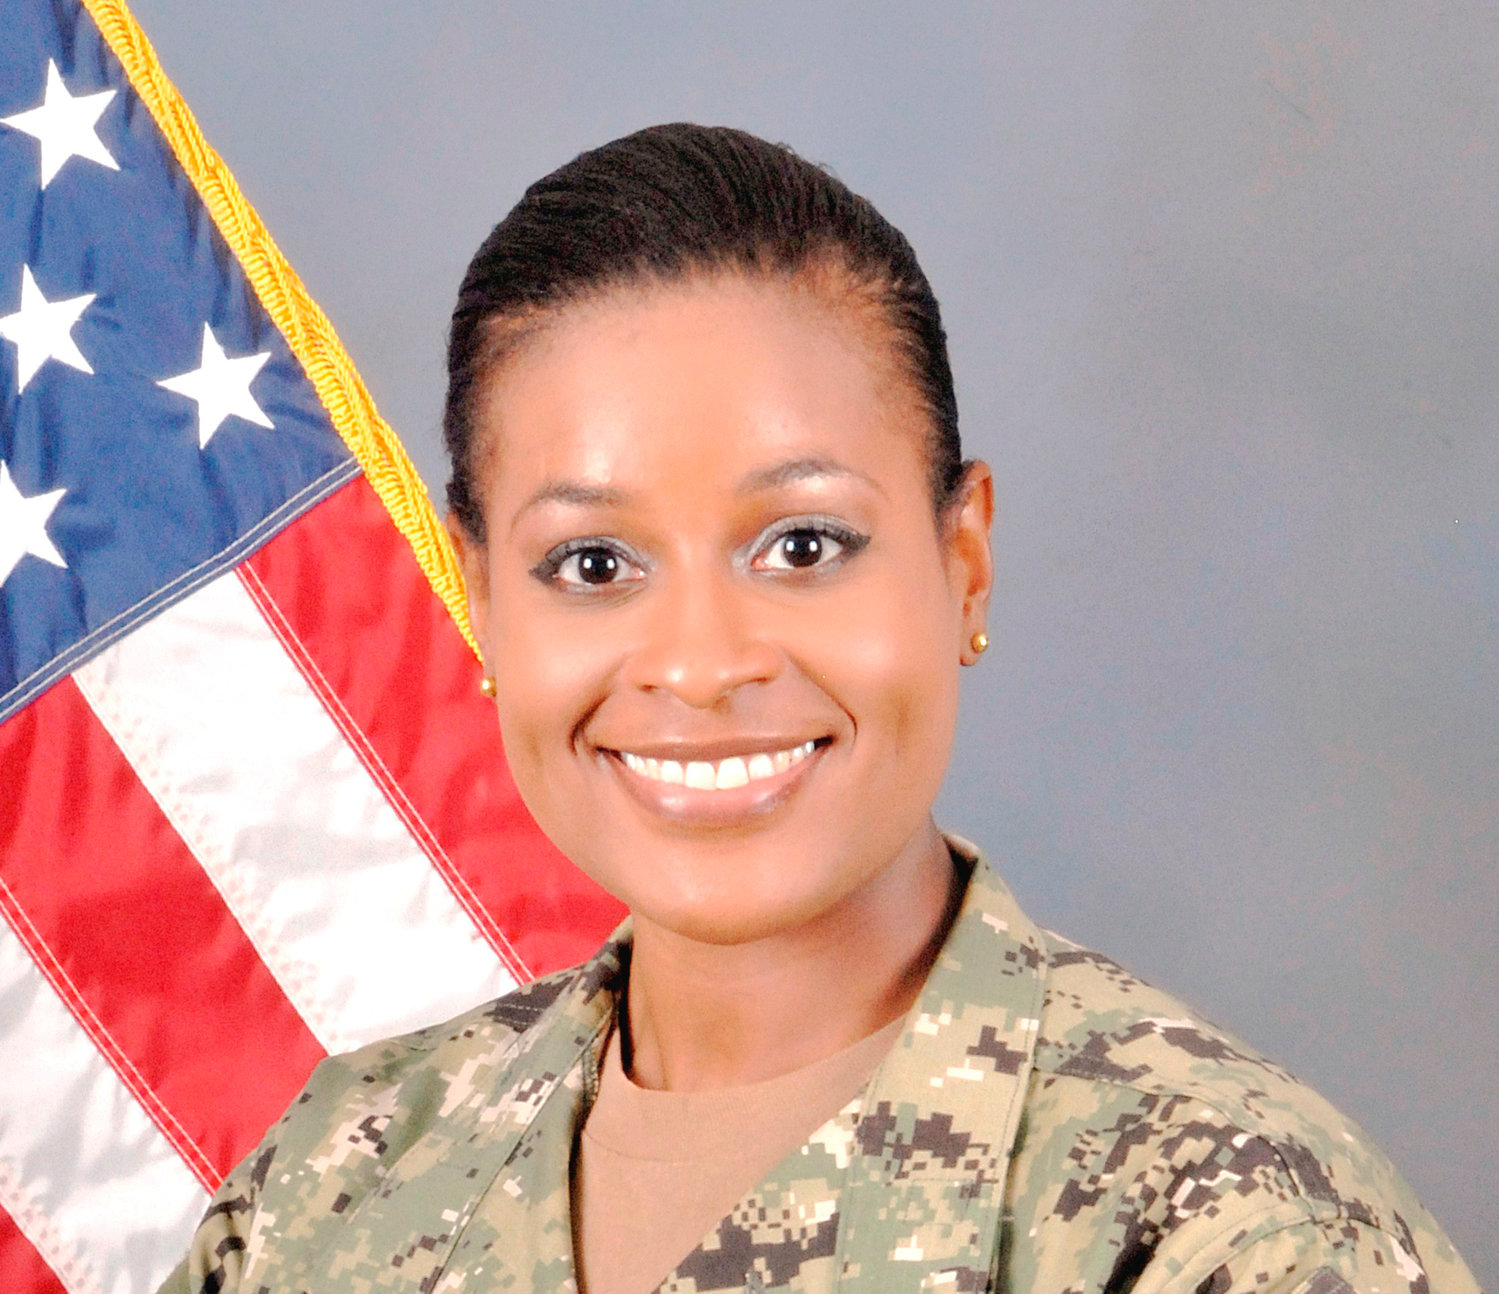 Yvonne Armstrong, 40, is an economics professor at the U.S. Naval Academy in Annapolis, Md.